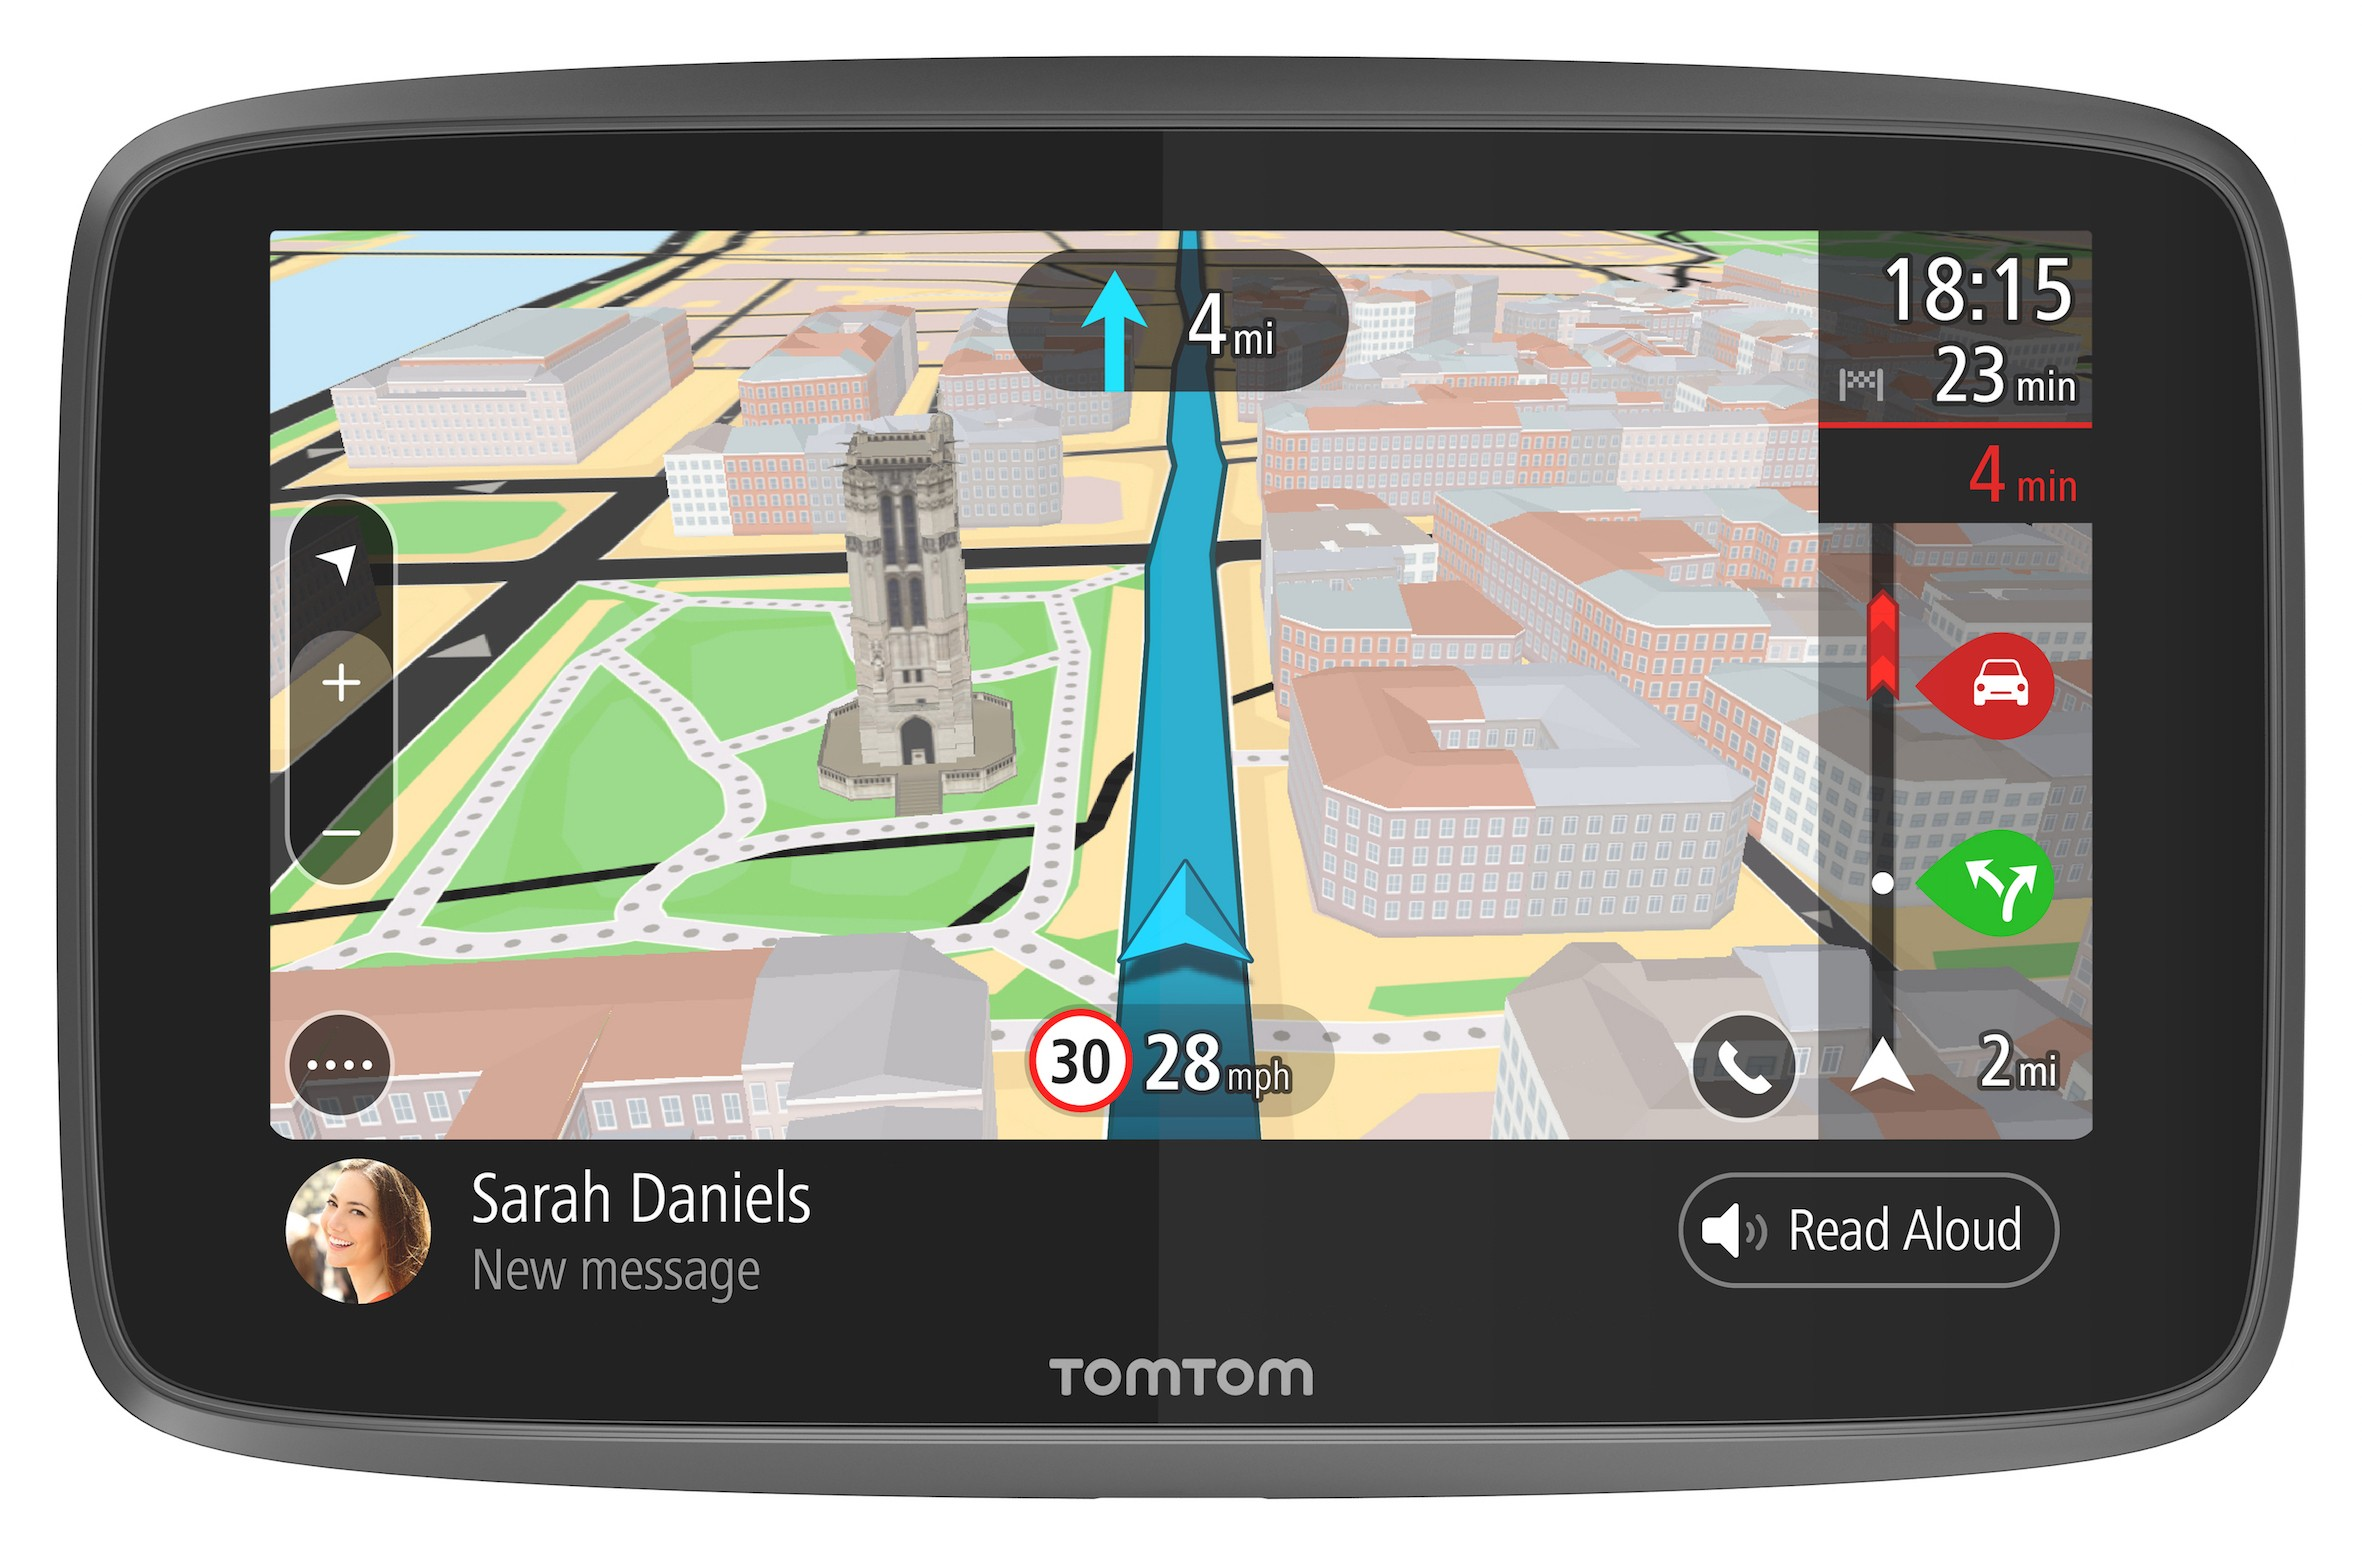 Find the model of your navigation device and what software it uses